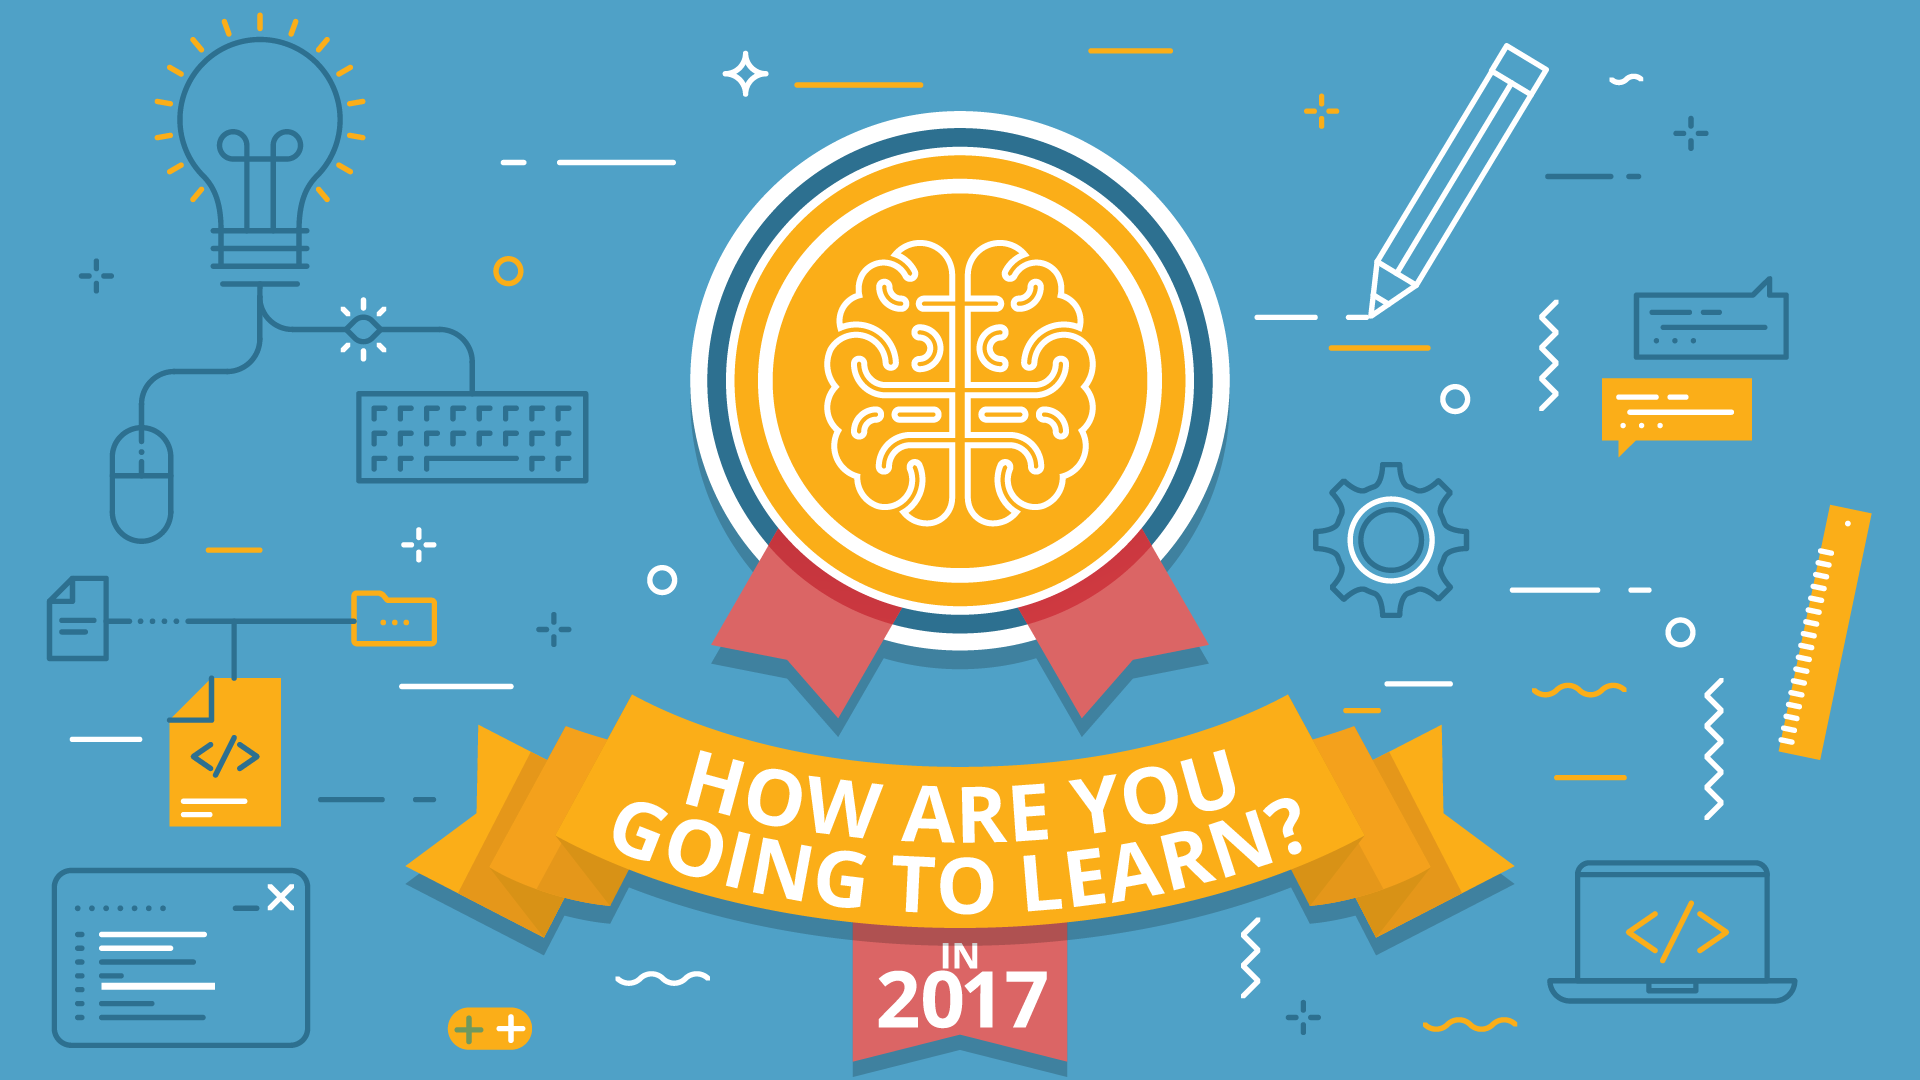 How are you going to learn in 2017 - VideoTile Learning